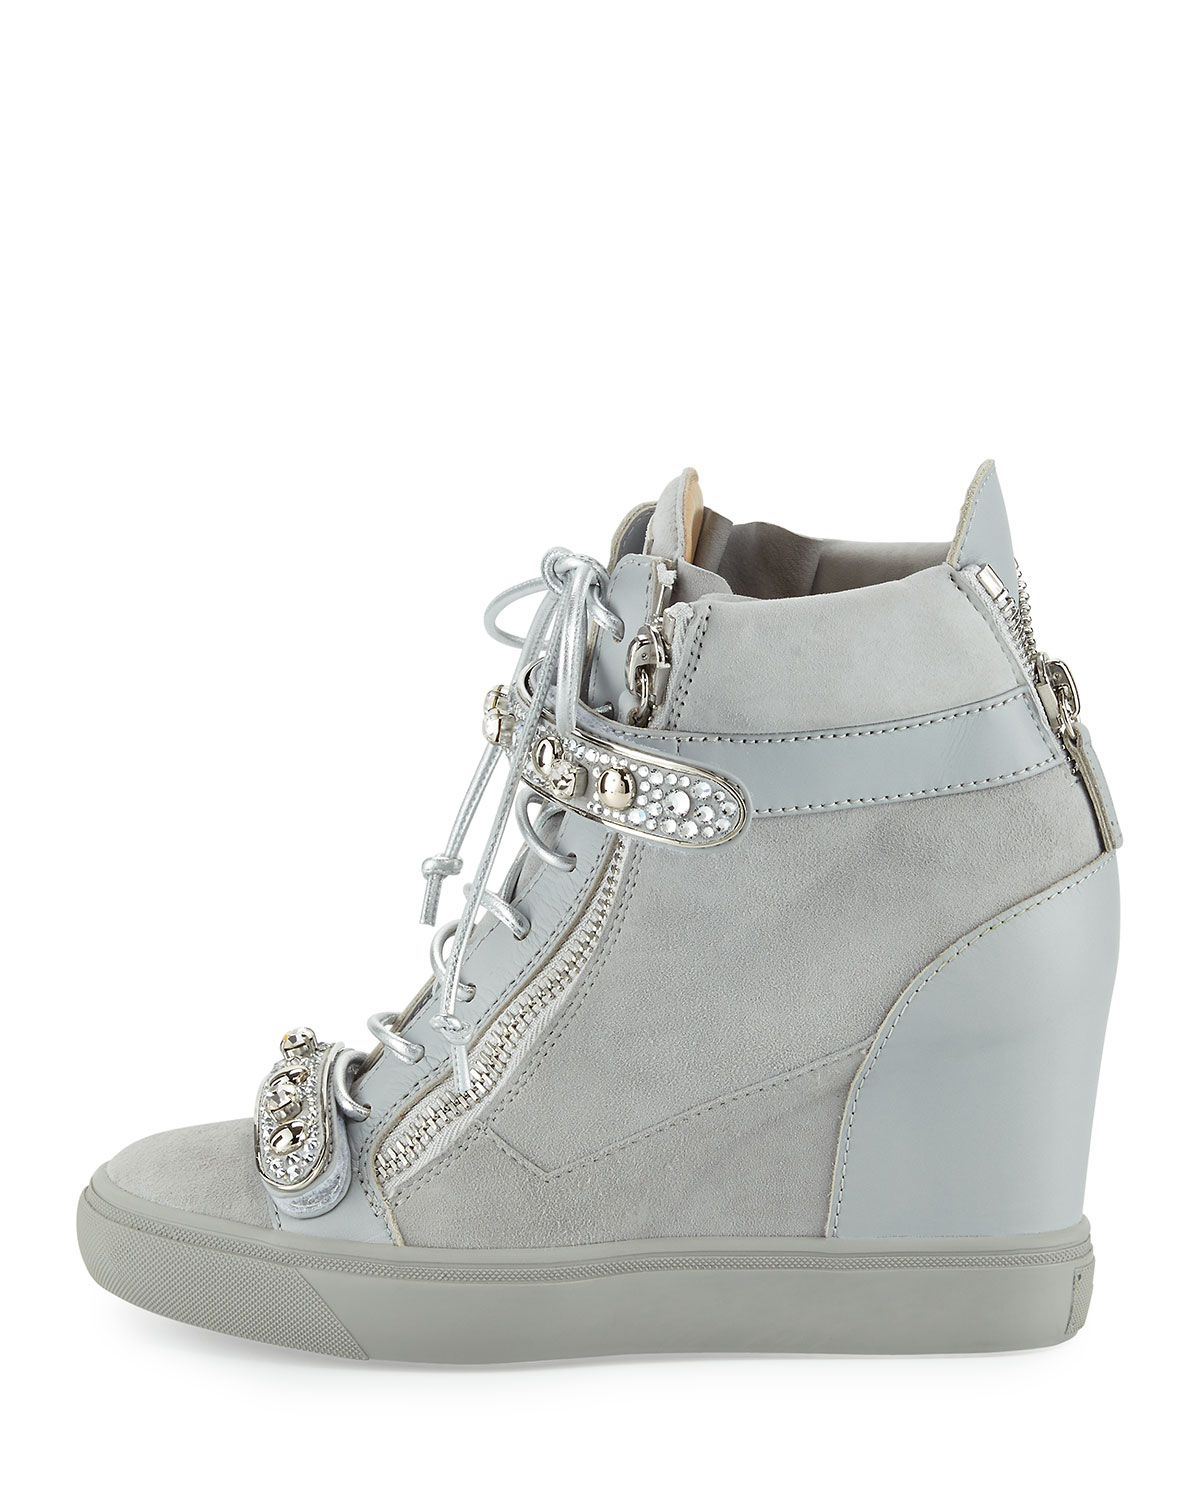 5f19a542fc2 Tiana Crystal High-Top Wedge Sneaker, Gray